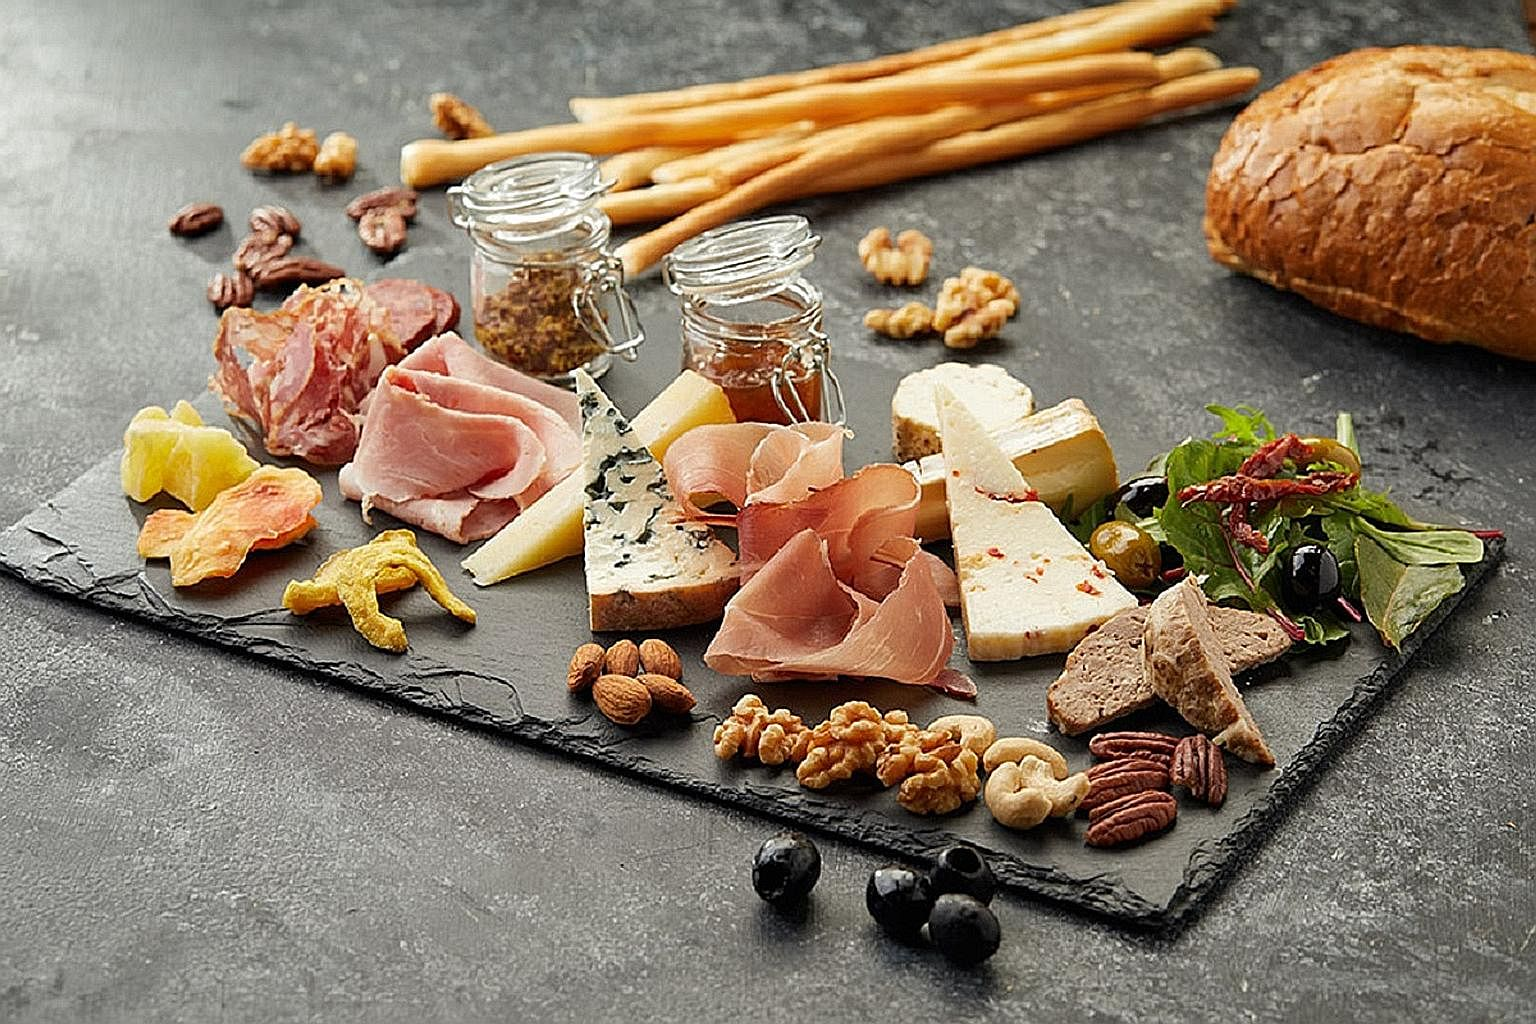 Nibble on Wine Connection's Cold Cut Platter, which includes cheese, bread and wine.